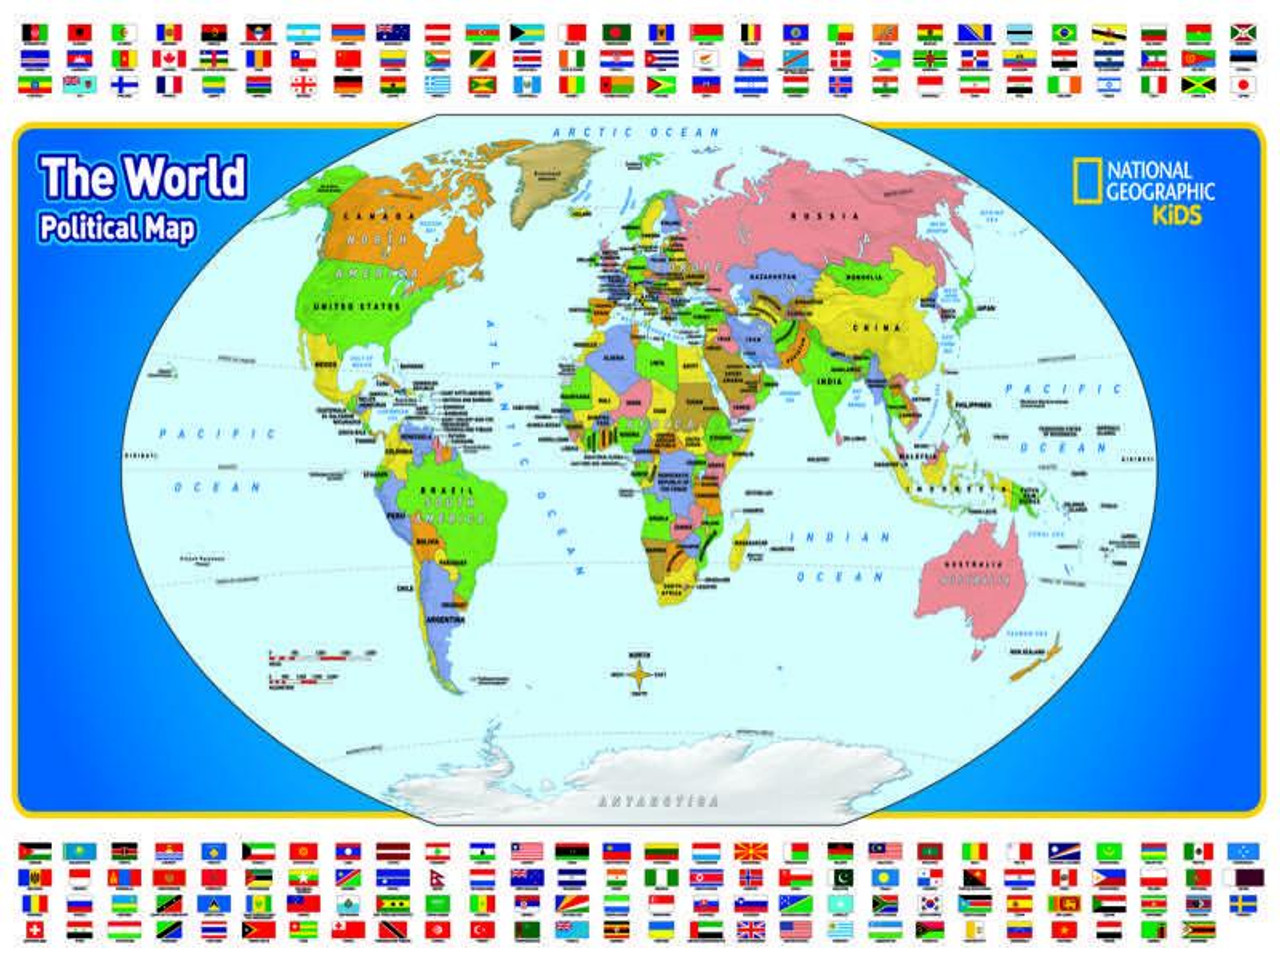 The World Kids Map - 300pc Jigsaw Puzzle by New York Puzzle Company